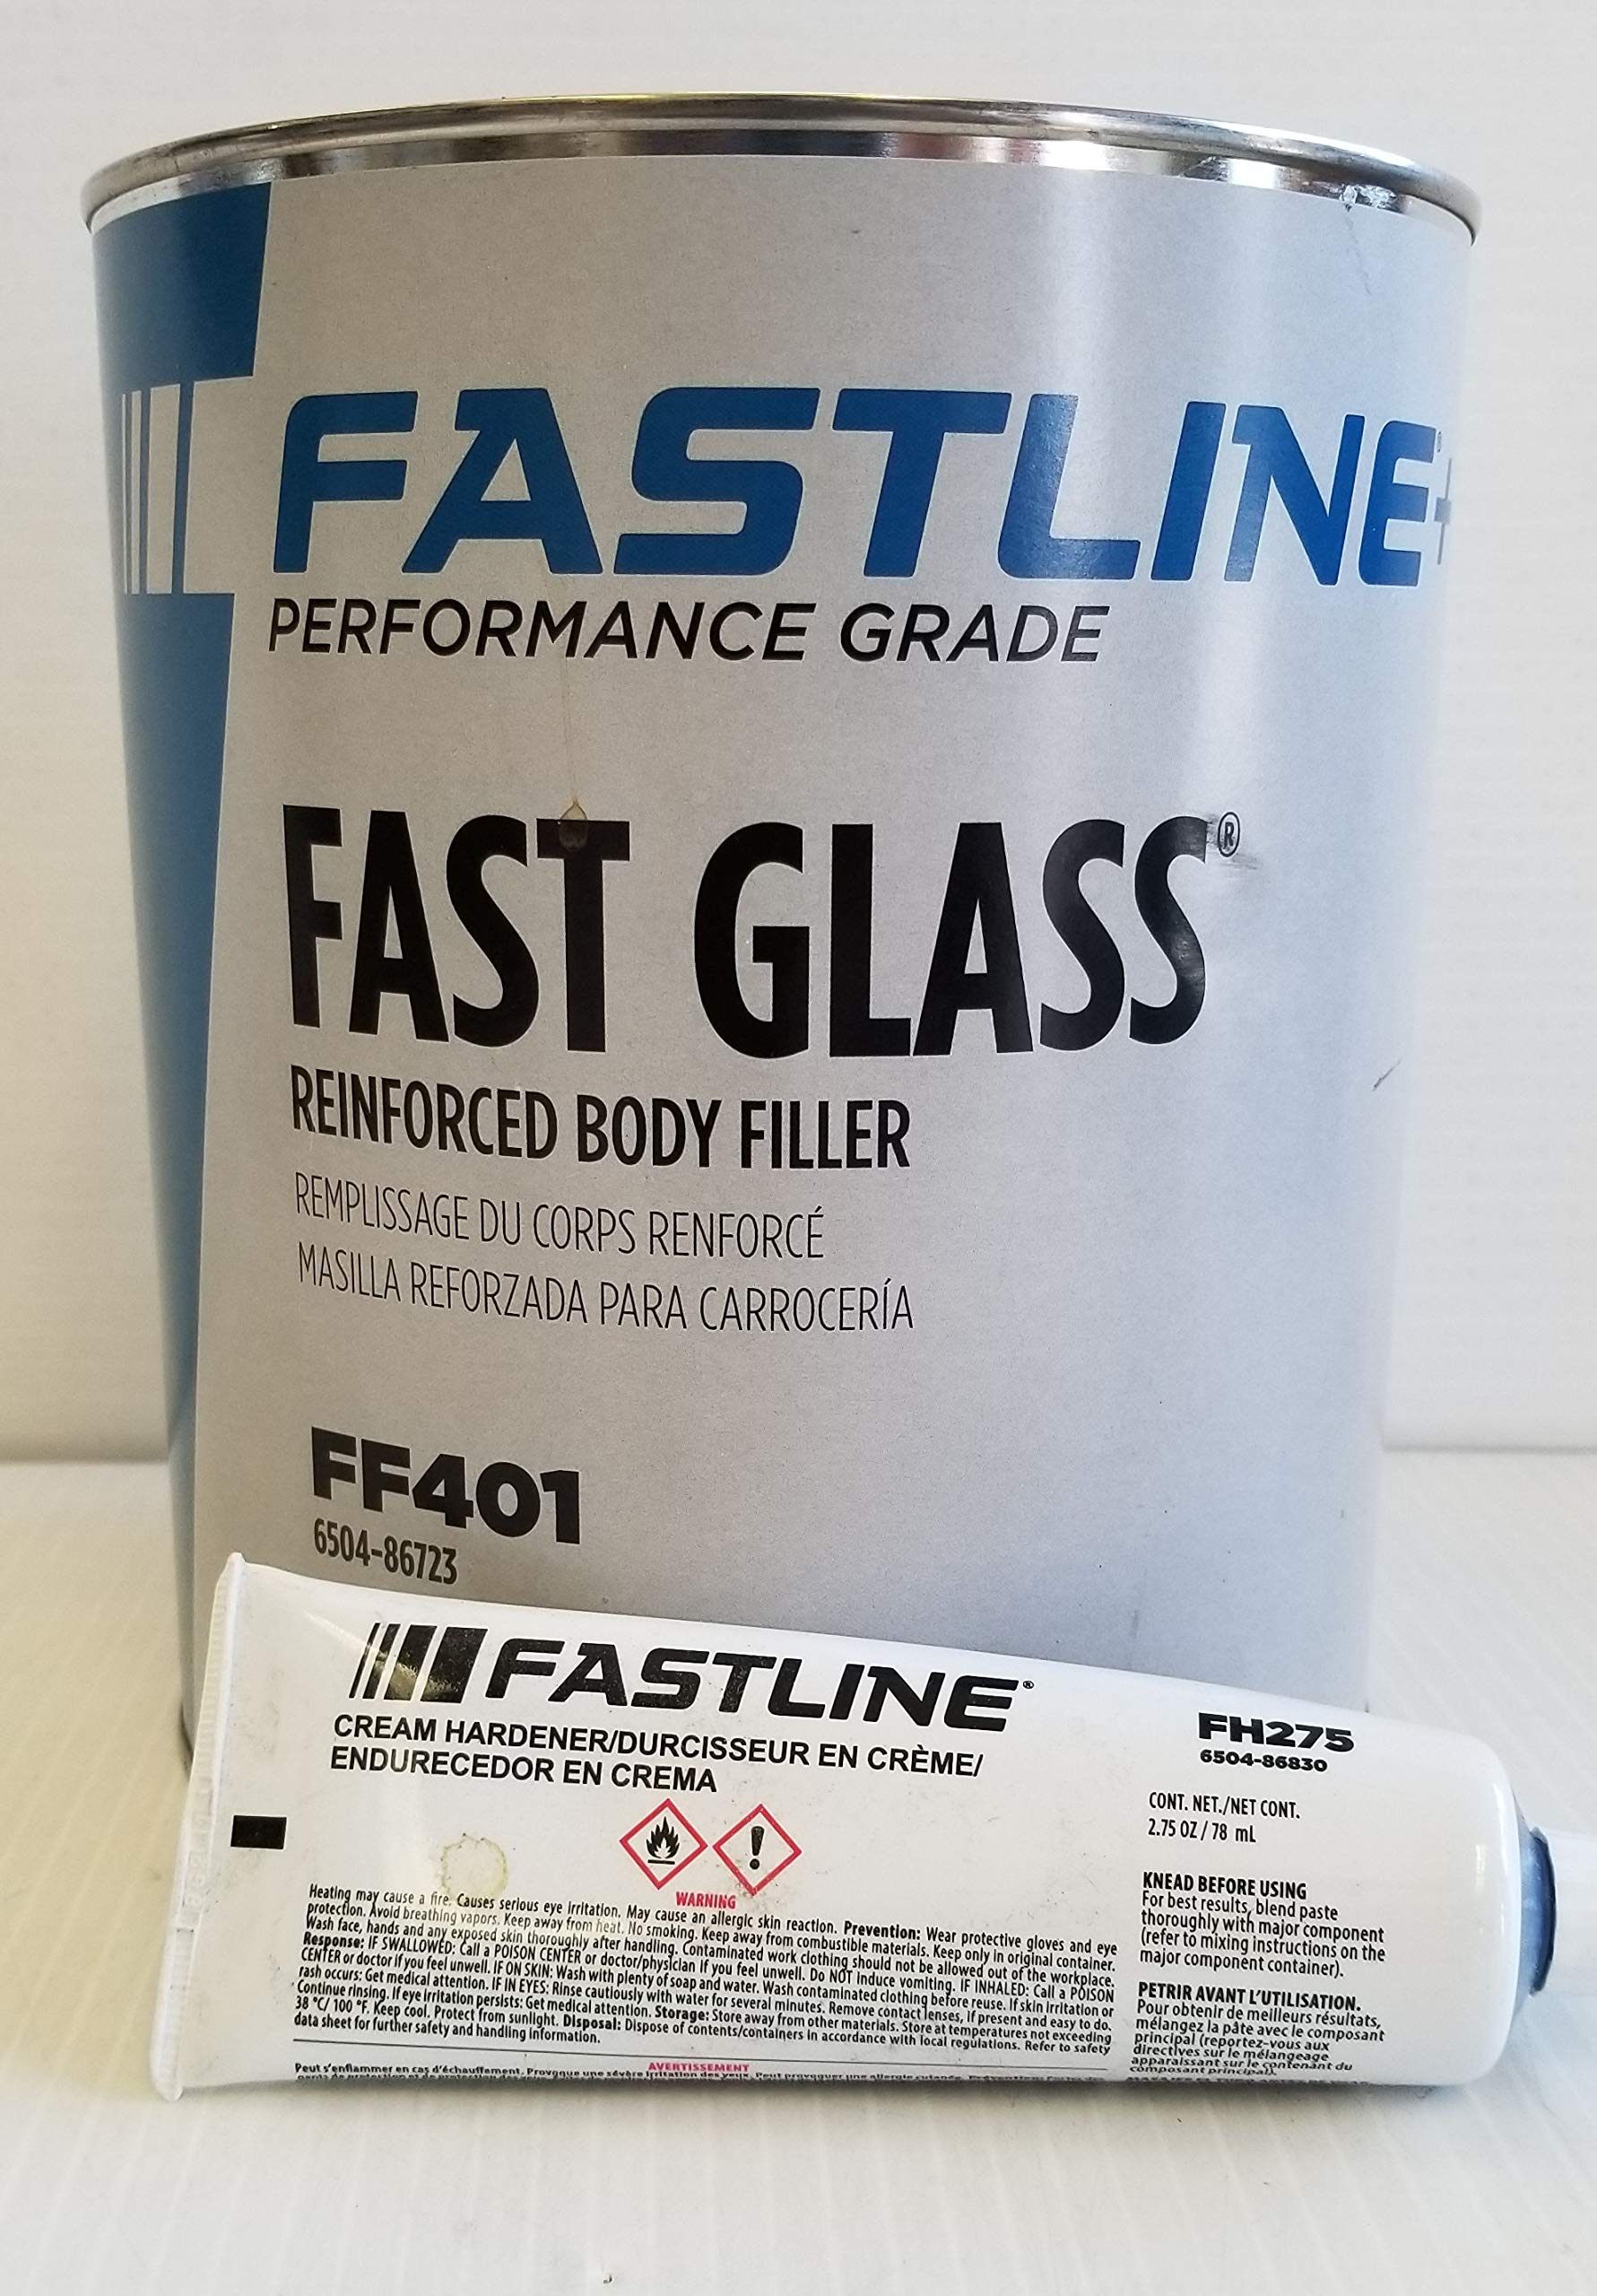 FASTLINE Performance Grade Fast Glass Reinforced Body Filler FF401 AUTO Body Paint Supplies